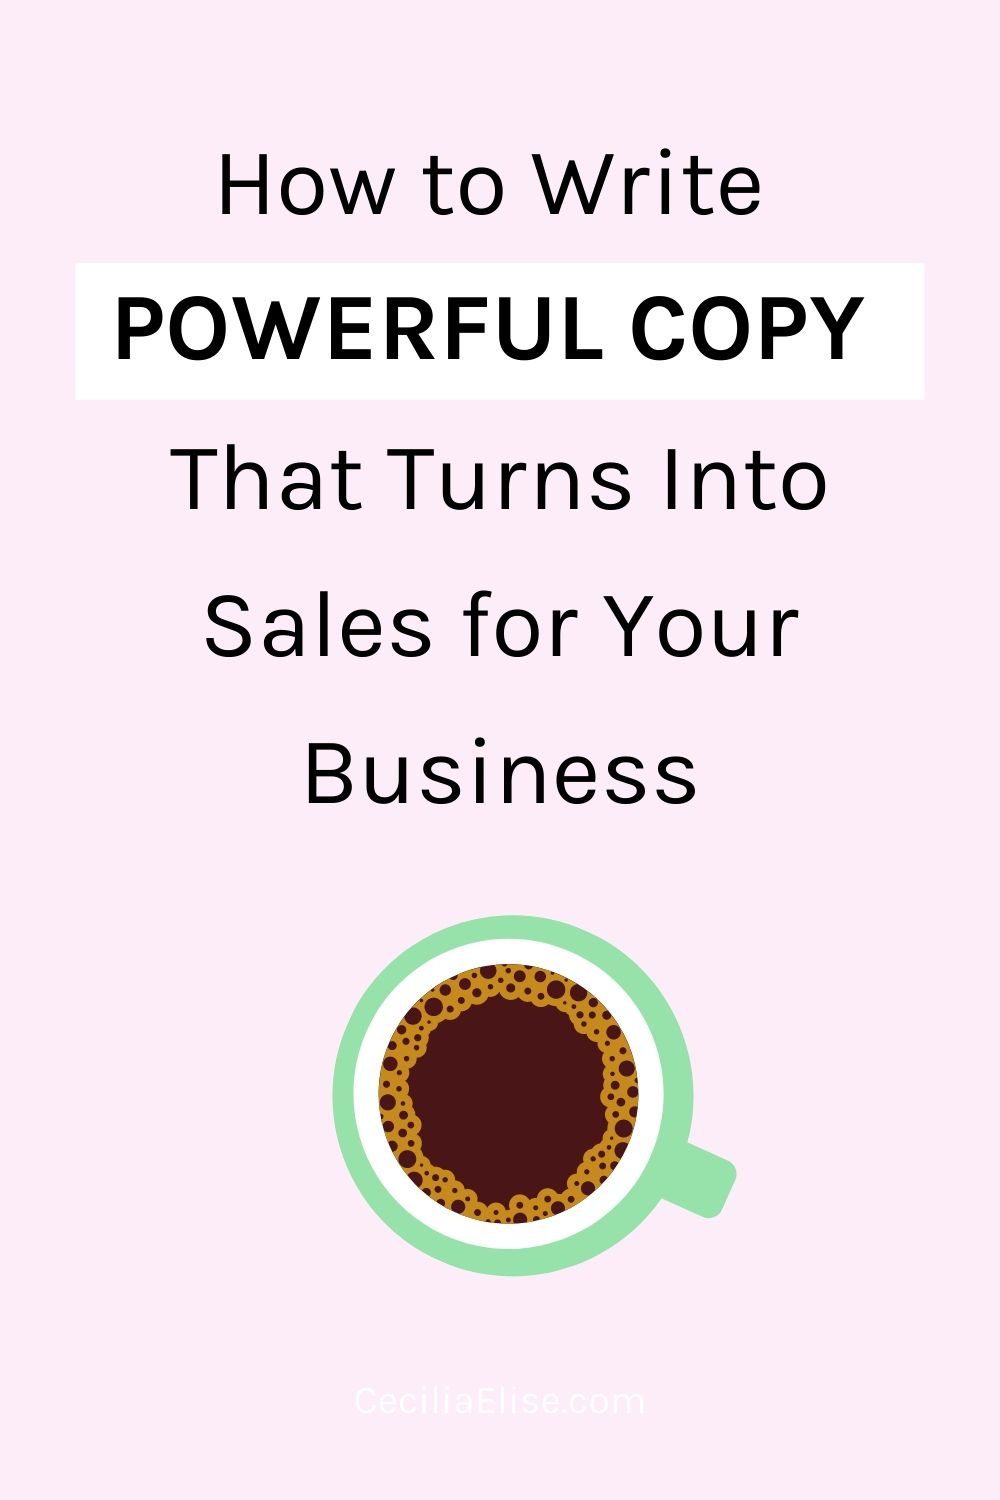 How to Write Powerful Copy That Turns Into Sales for Your Business